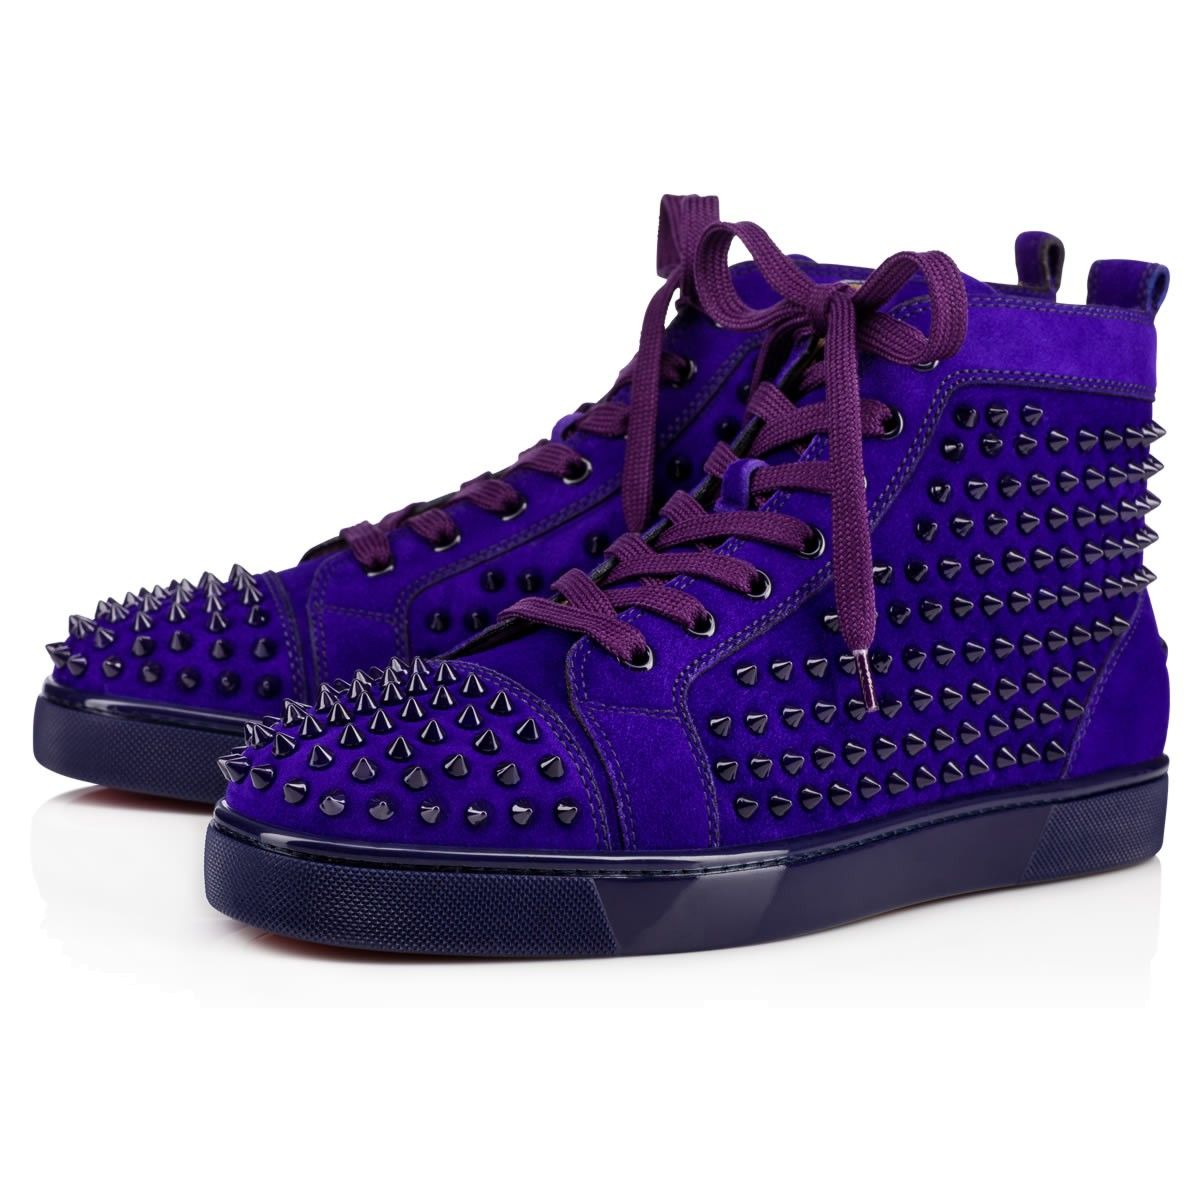 buy online c0a11 0b8ca CHRISTIAN LOUBOUTIN Louis Veau Velours/Spikes Purple Pop ...